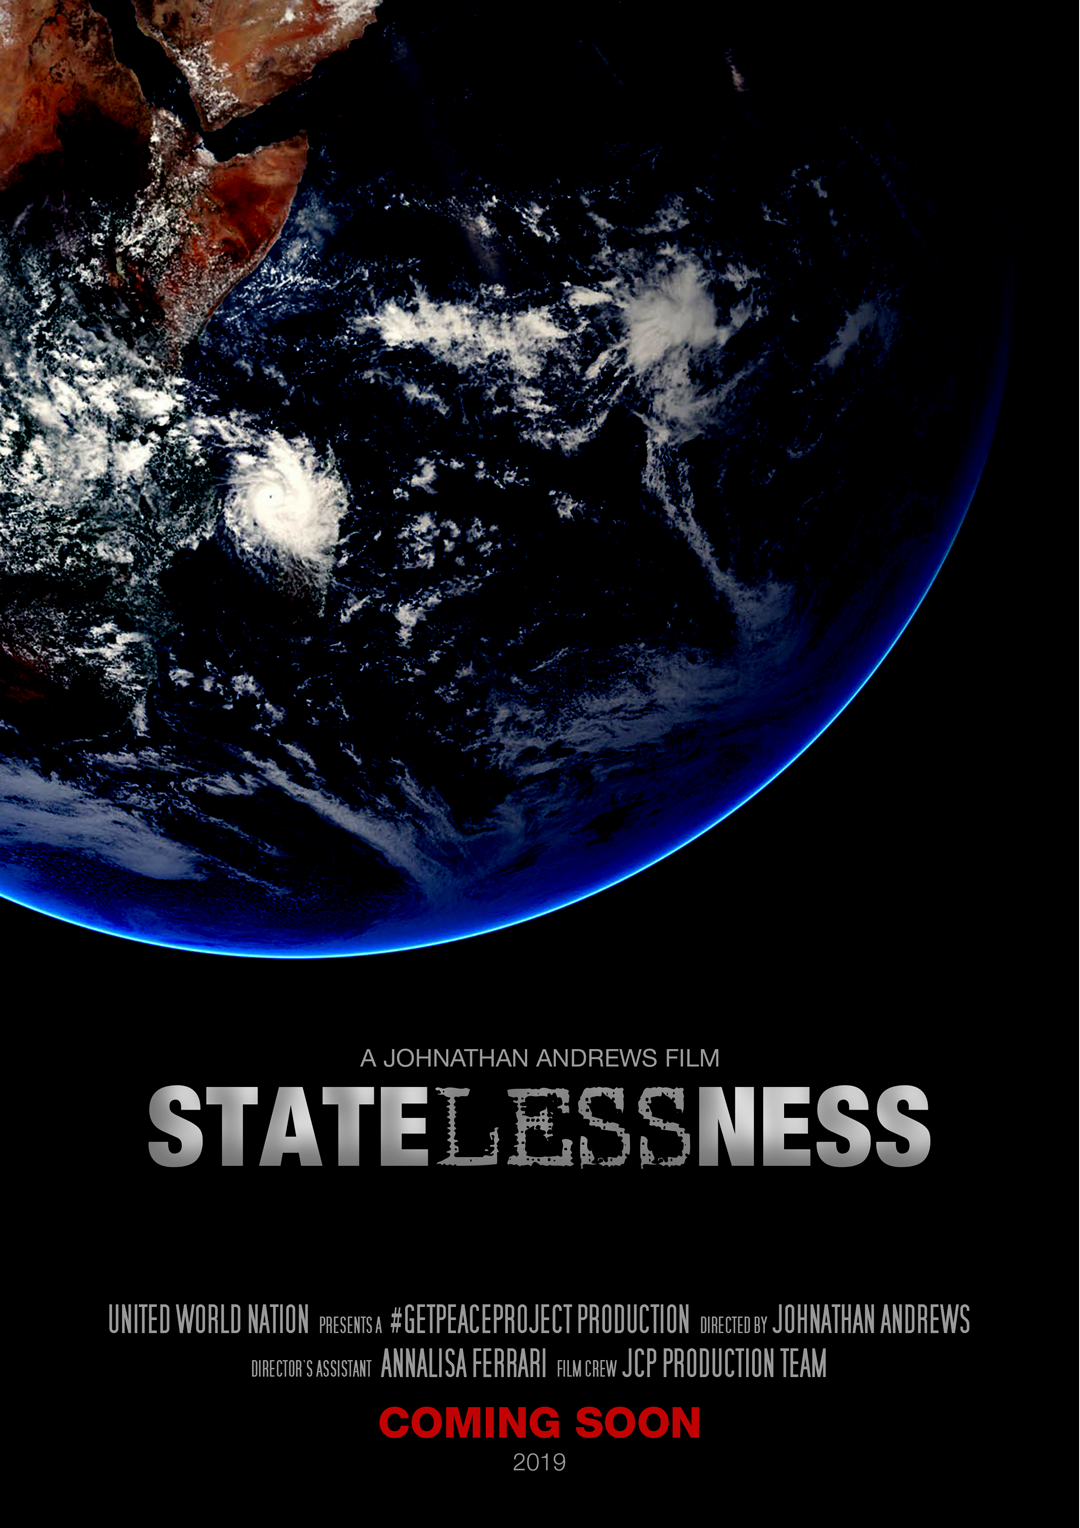 Statelessness Film By Johnathan Andrews